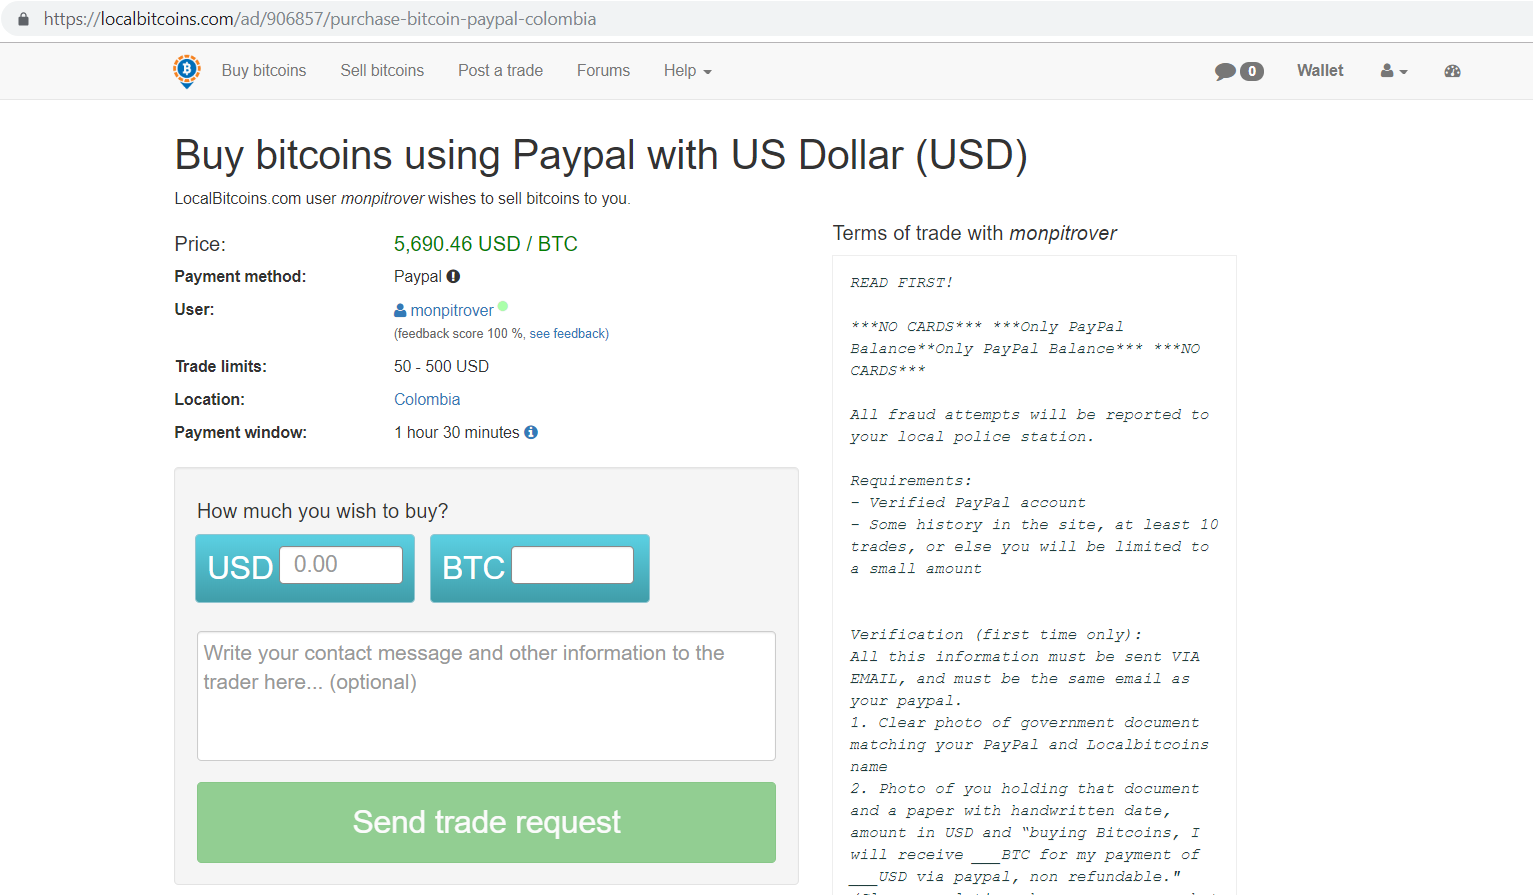 Localbitcoins.com buy bitcoins using PayPal with US dollar.